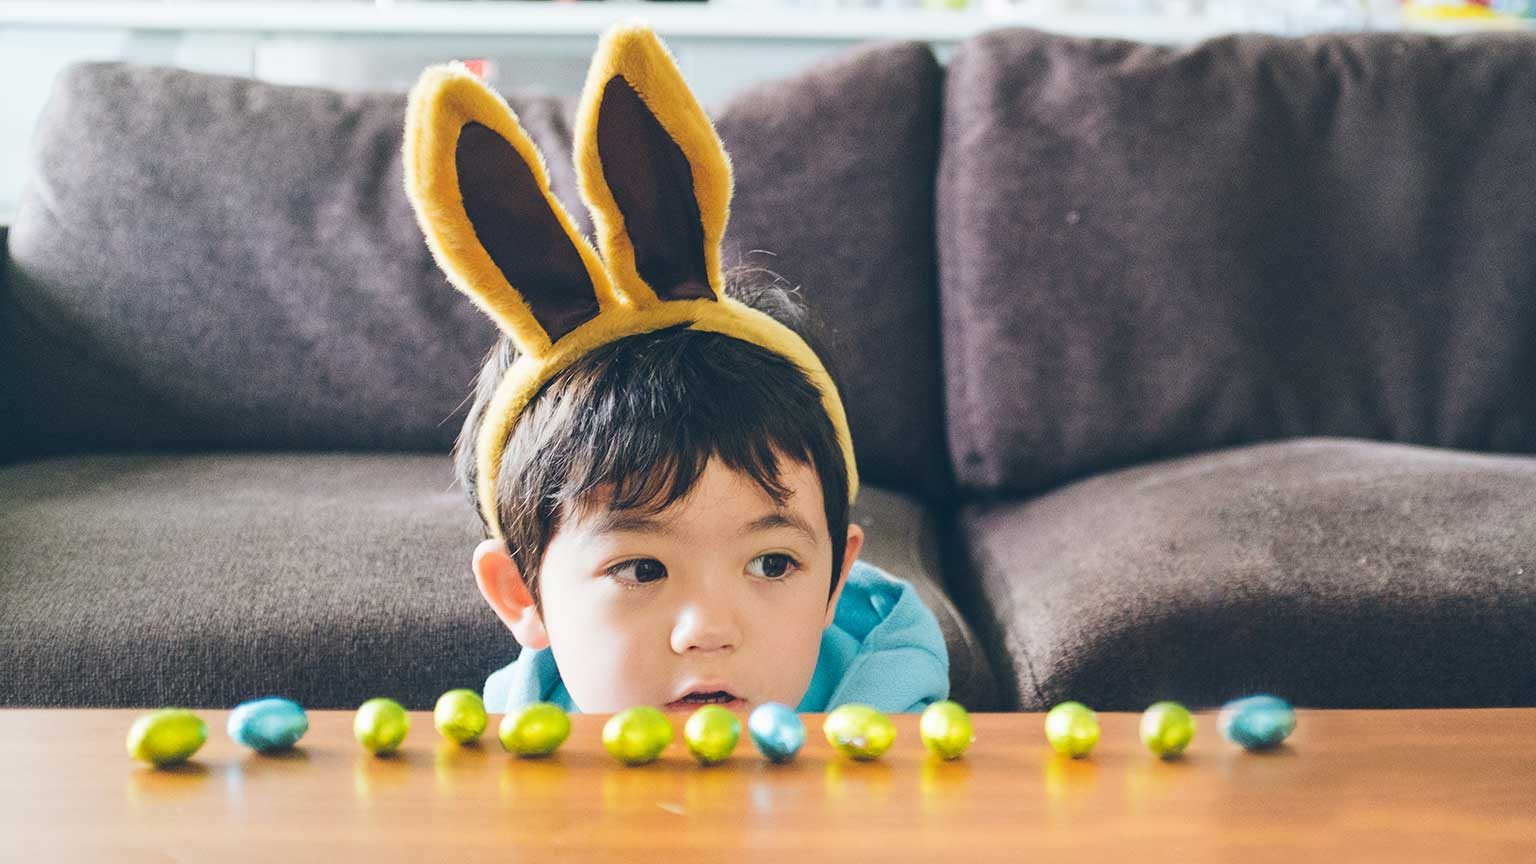 Young boy wearing rabbit eats looking at a line of easter eggs laid out on a table.